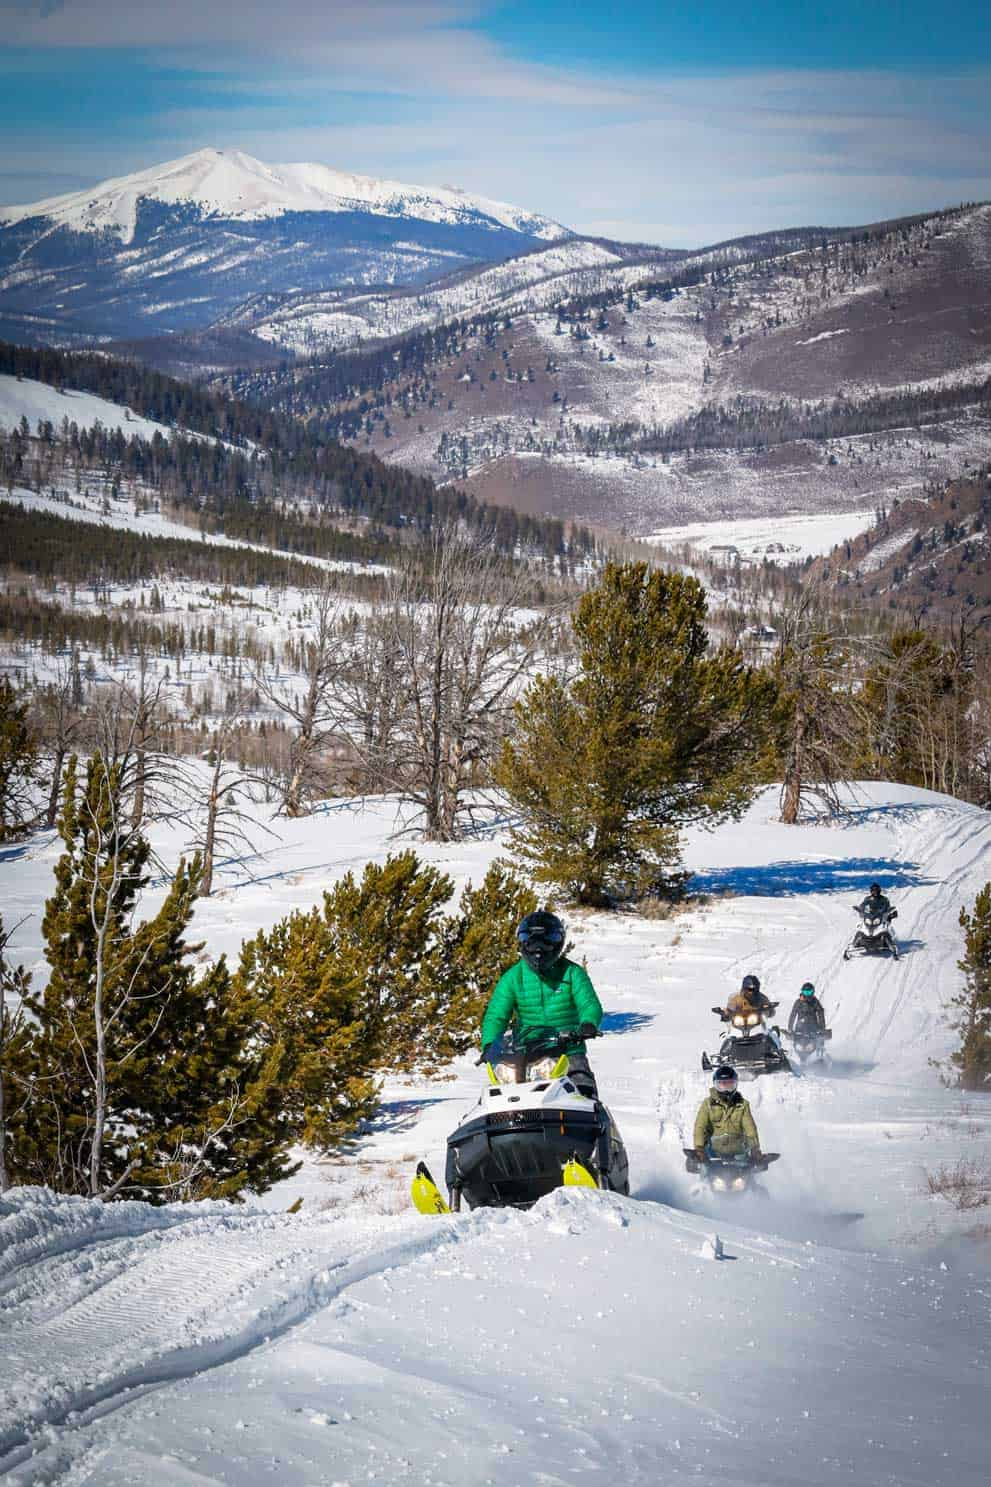 Guests enjoying snowmobiling on miles of groomed trails